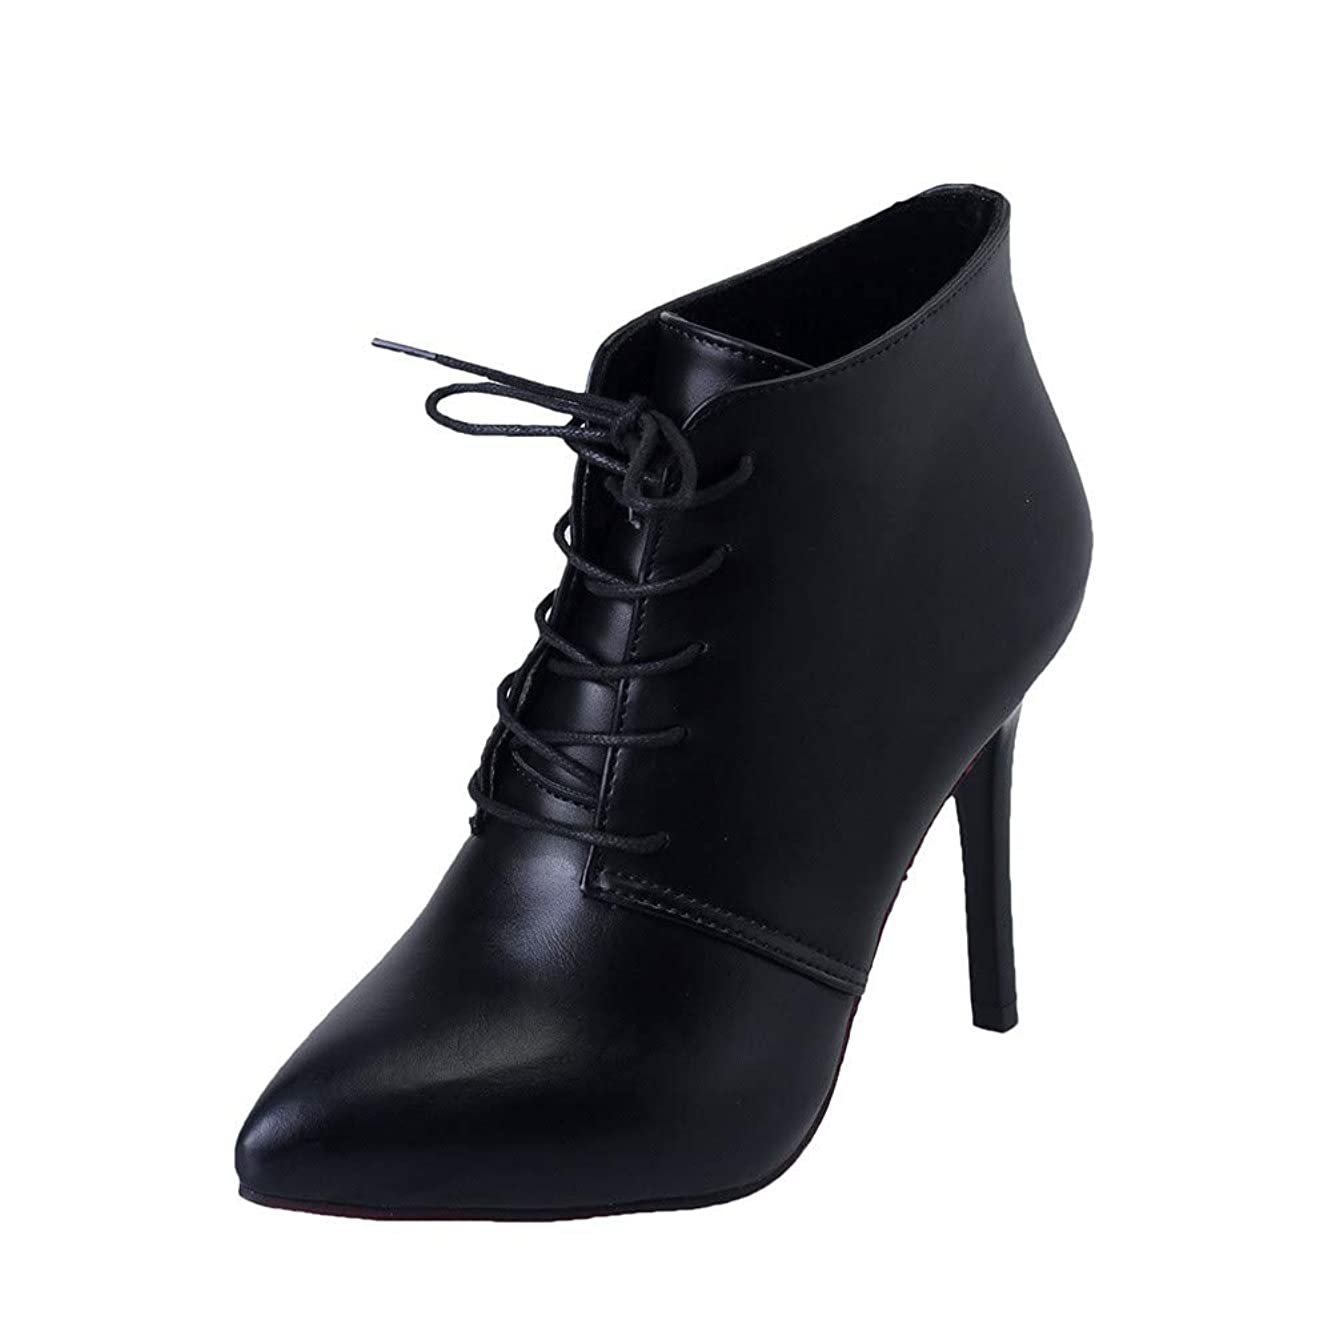 Hunzed women shoes Casual Pointed high Heel Sexy lace Ankle Boots